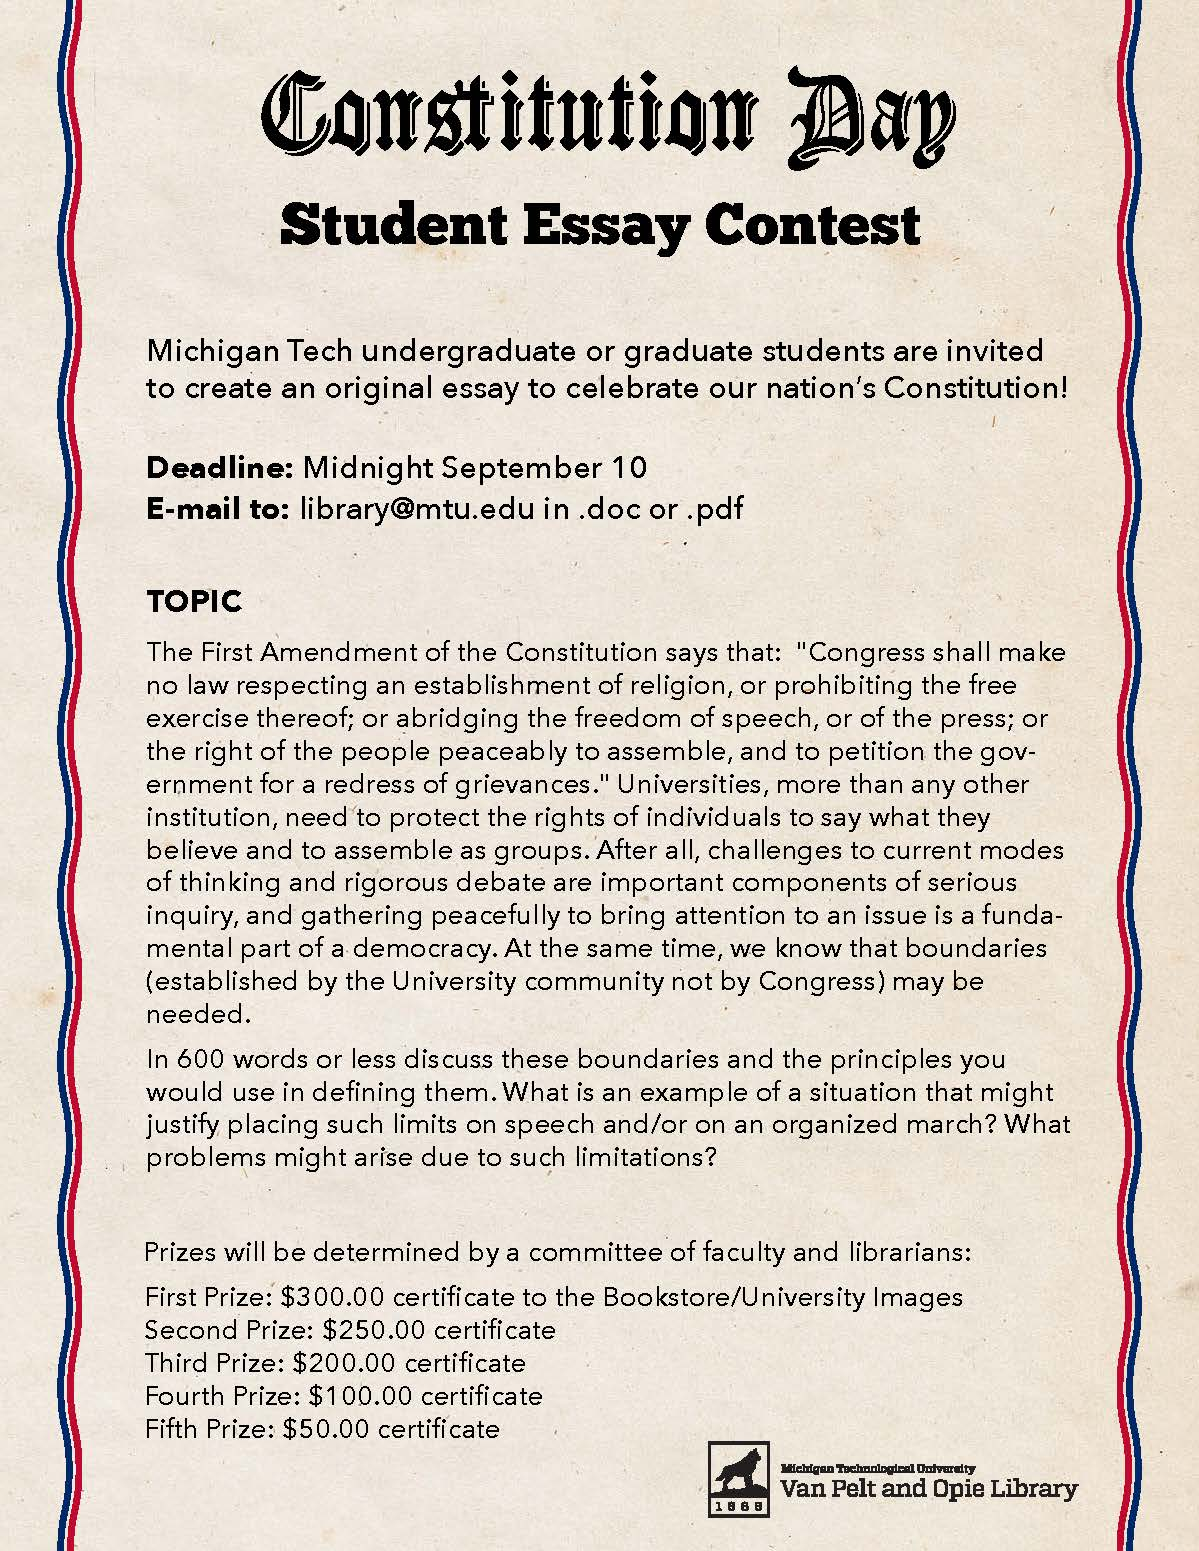 How To Write A Essay For High School Essaycontest Copy Should Condoms Be Available In High School Essay also How To Write A Thesis Sentence For An Essay Constitution Day Student Essay Contest  Pavlis Honors College Blog Argumentative Essay Topics For High School